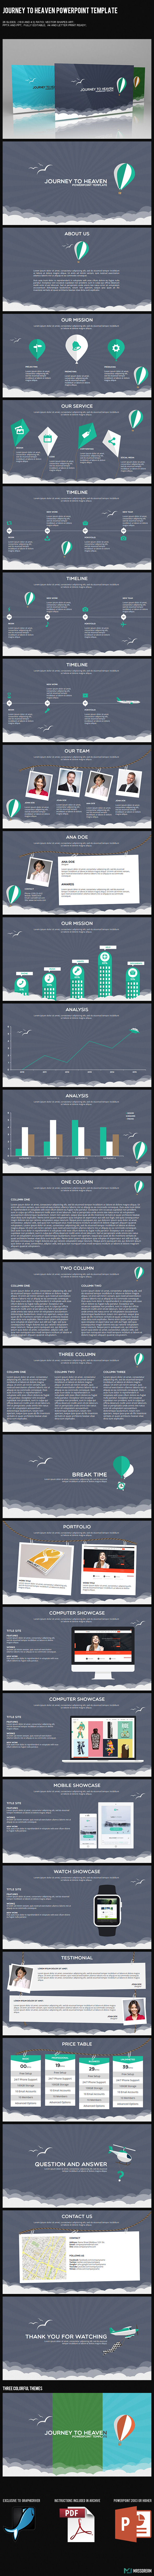 GraphicRiver Journey to Heaven PowerPoint Template 10451838